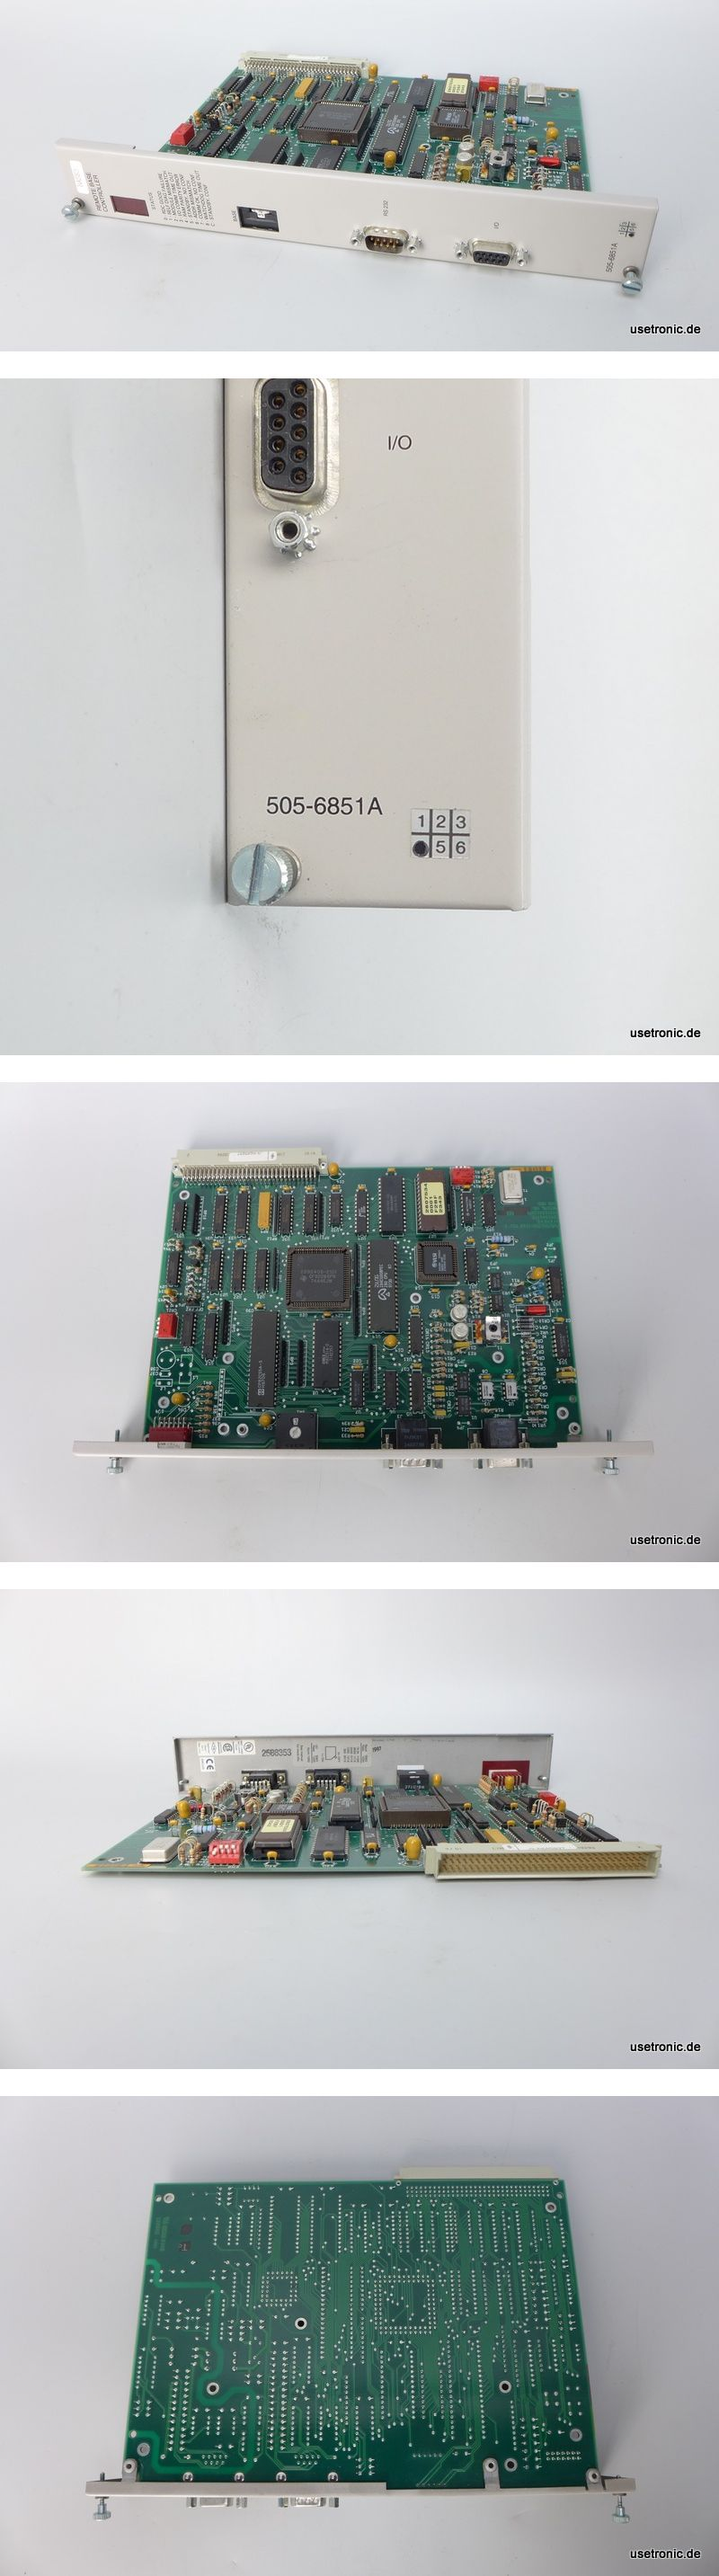 Siemens Texas Instruments Remote Base Controller 505-6851A